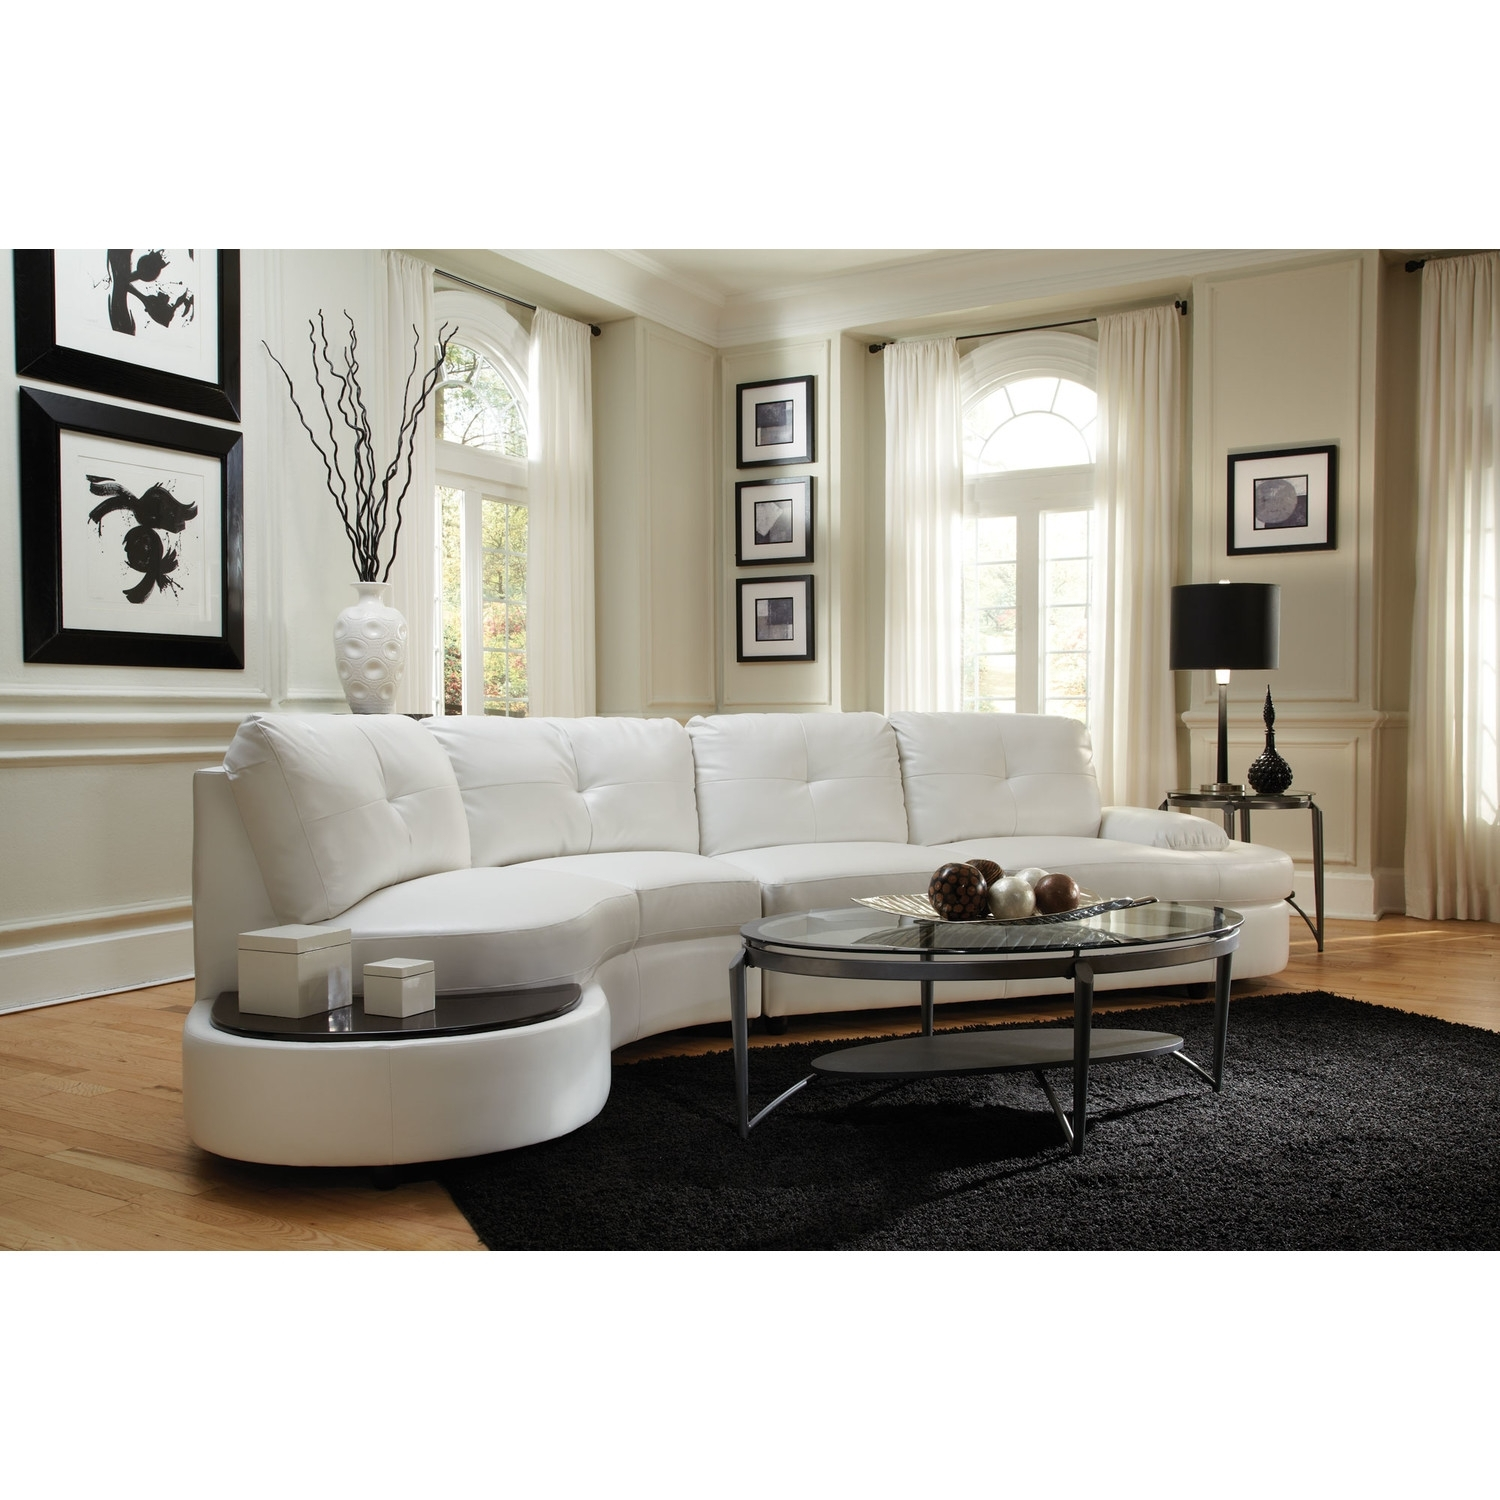 New Cheap White Leather Sectional Sofa 89 In Sectional Sofas With Regard To Rochester Ny Sectional Sofas (Photo 7 of 10)